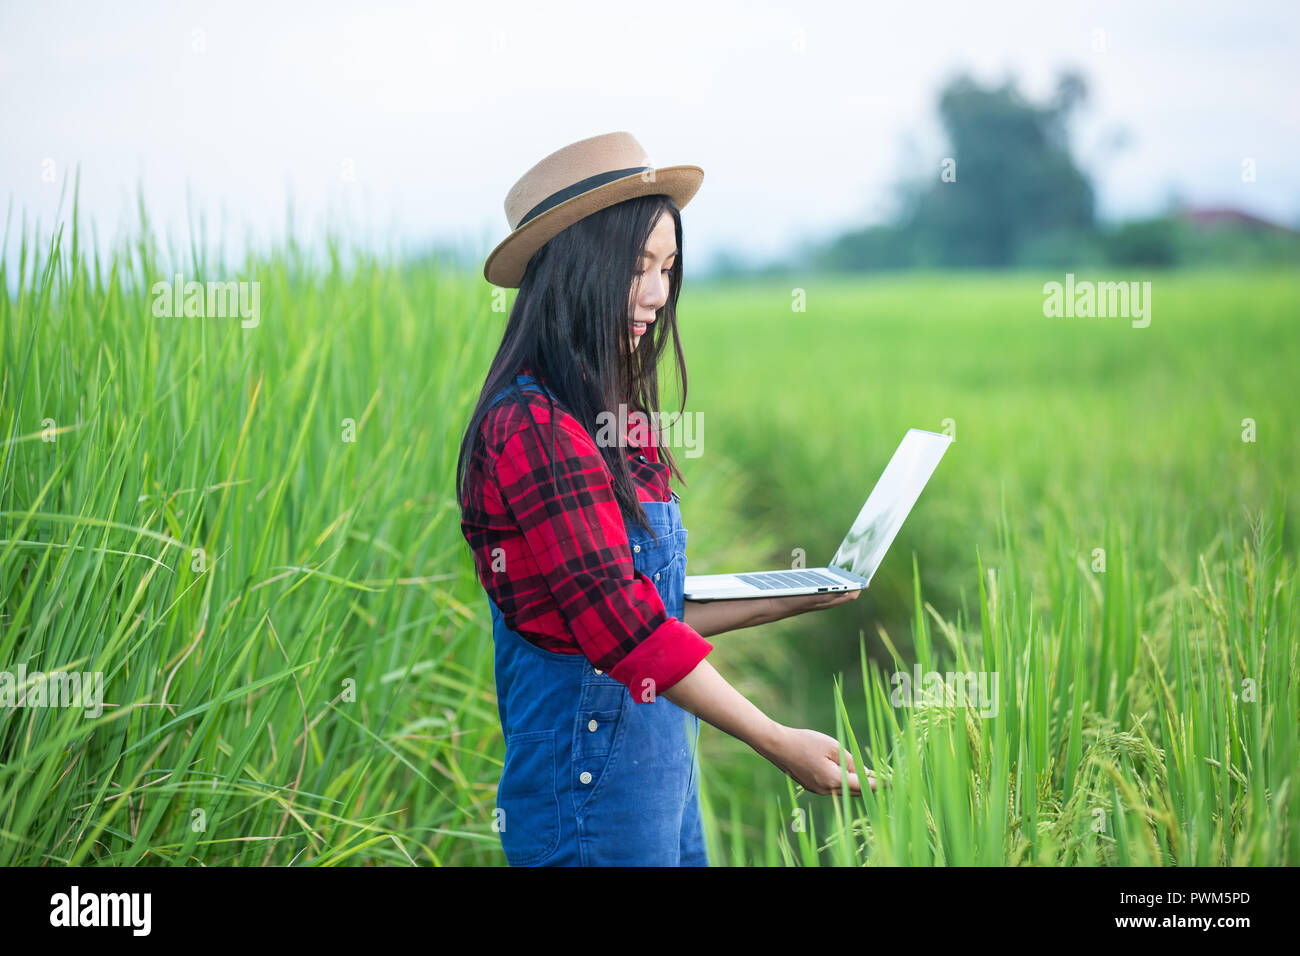 Farmer Woman Rice Plantation Checking Quality Concept Of Smart Agriculture And Modern Technology Stock Photo Alamy